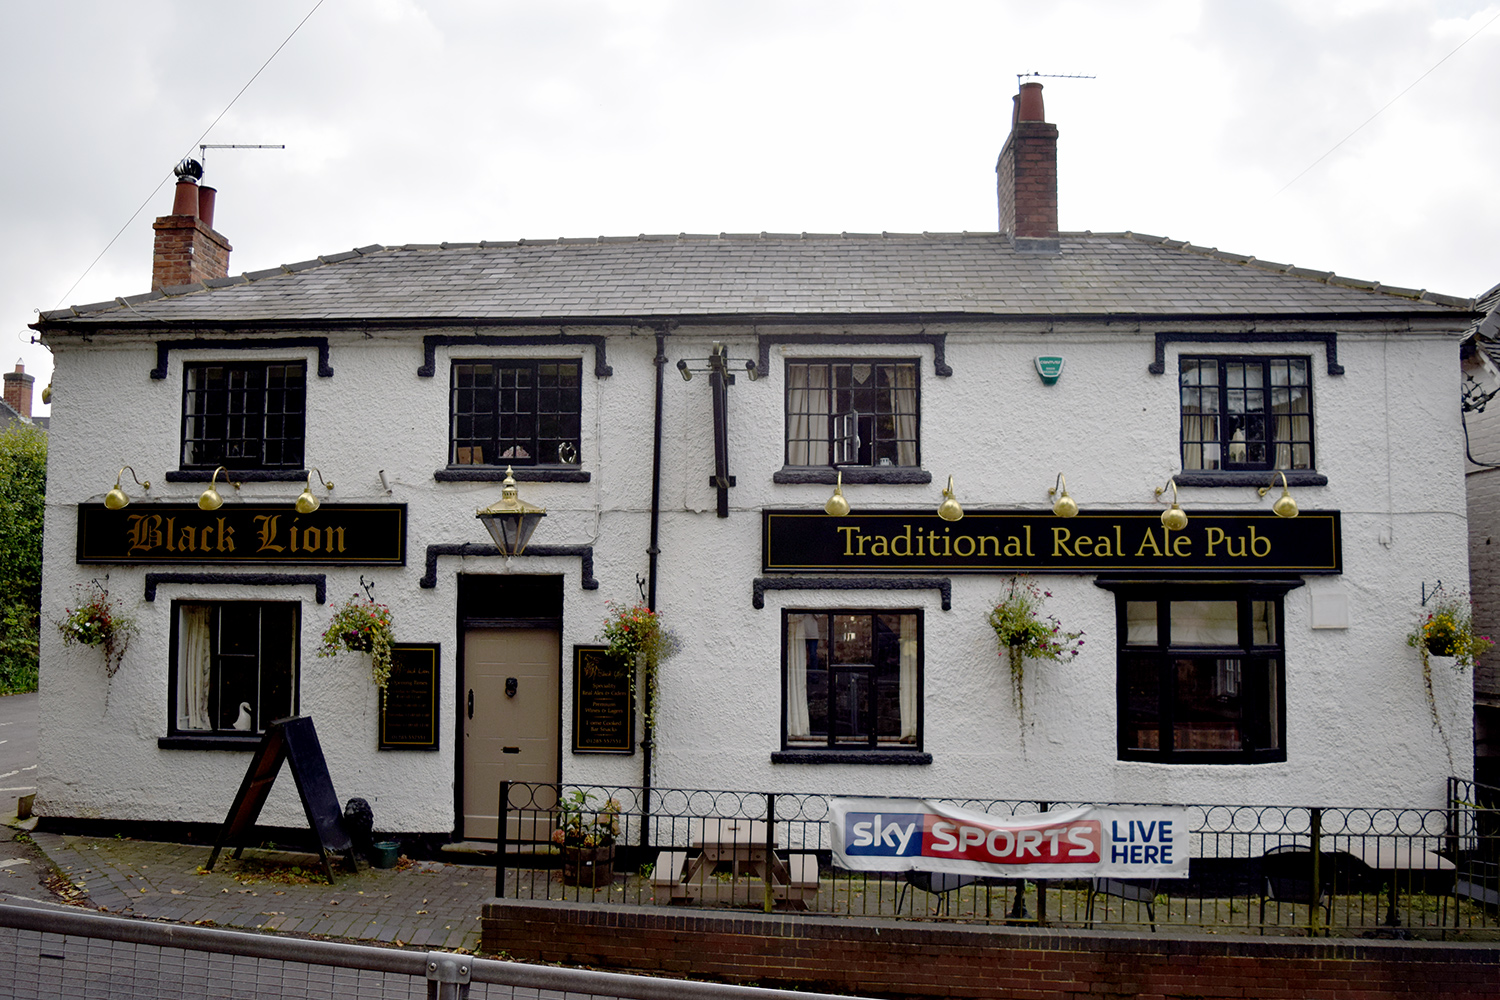 The Black Lion in Blackfordby